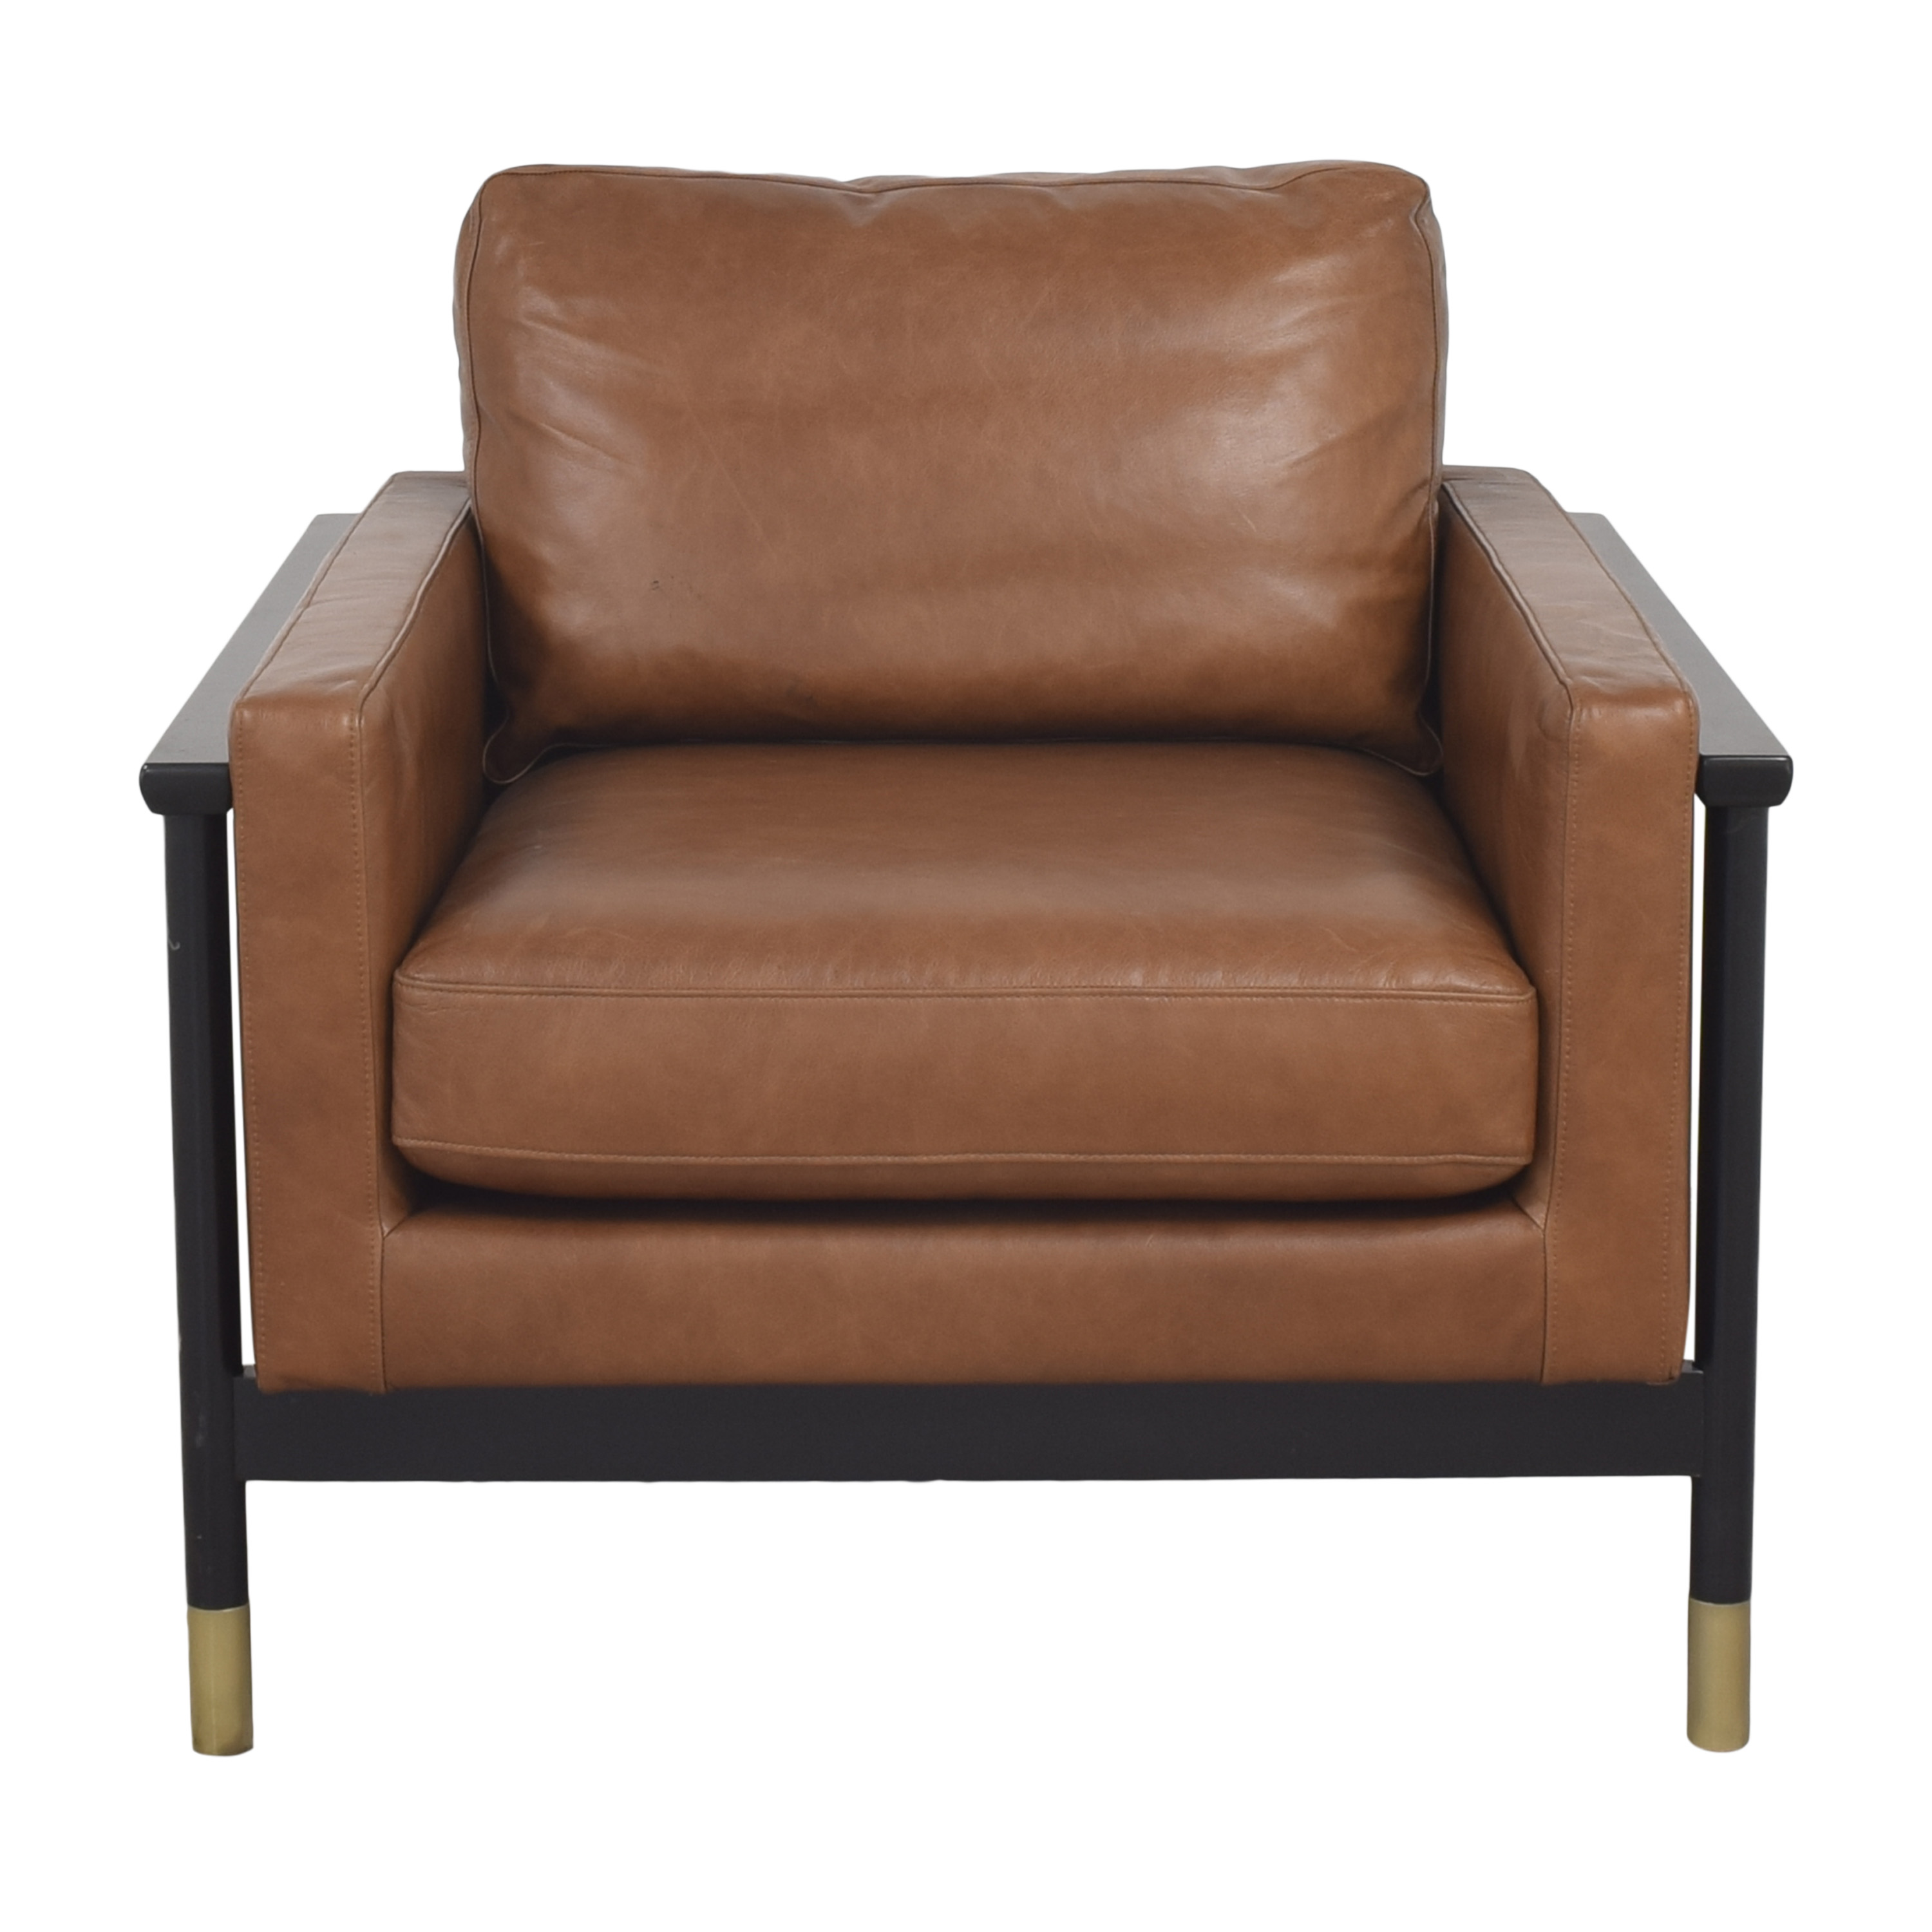 buy Interior Define Jason Wu Accent Chair Interior Define